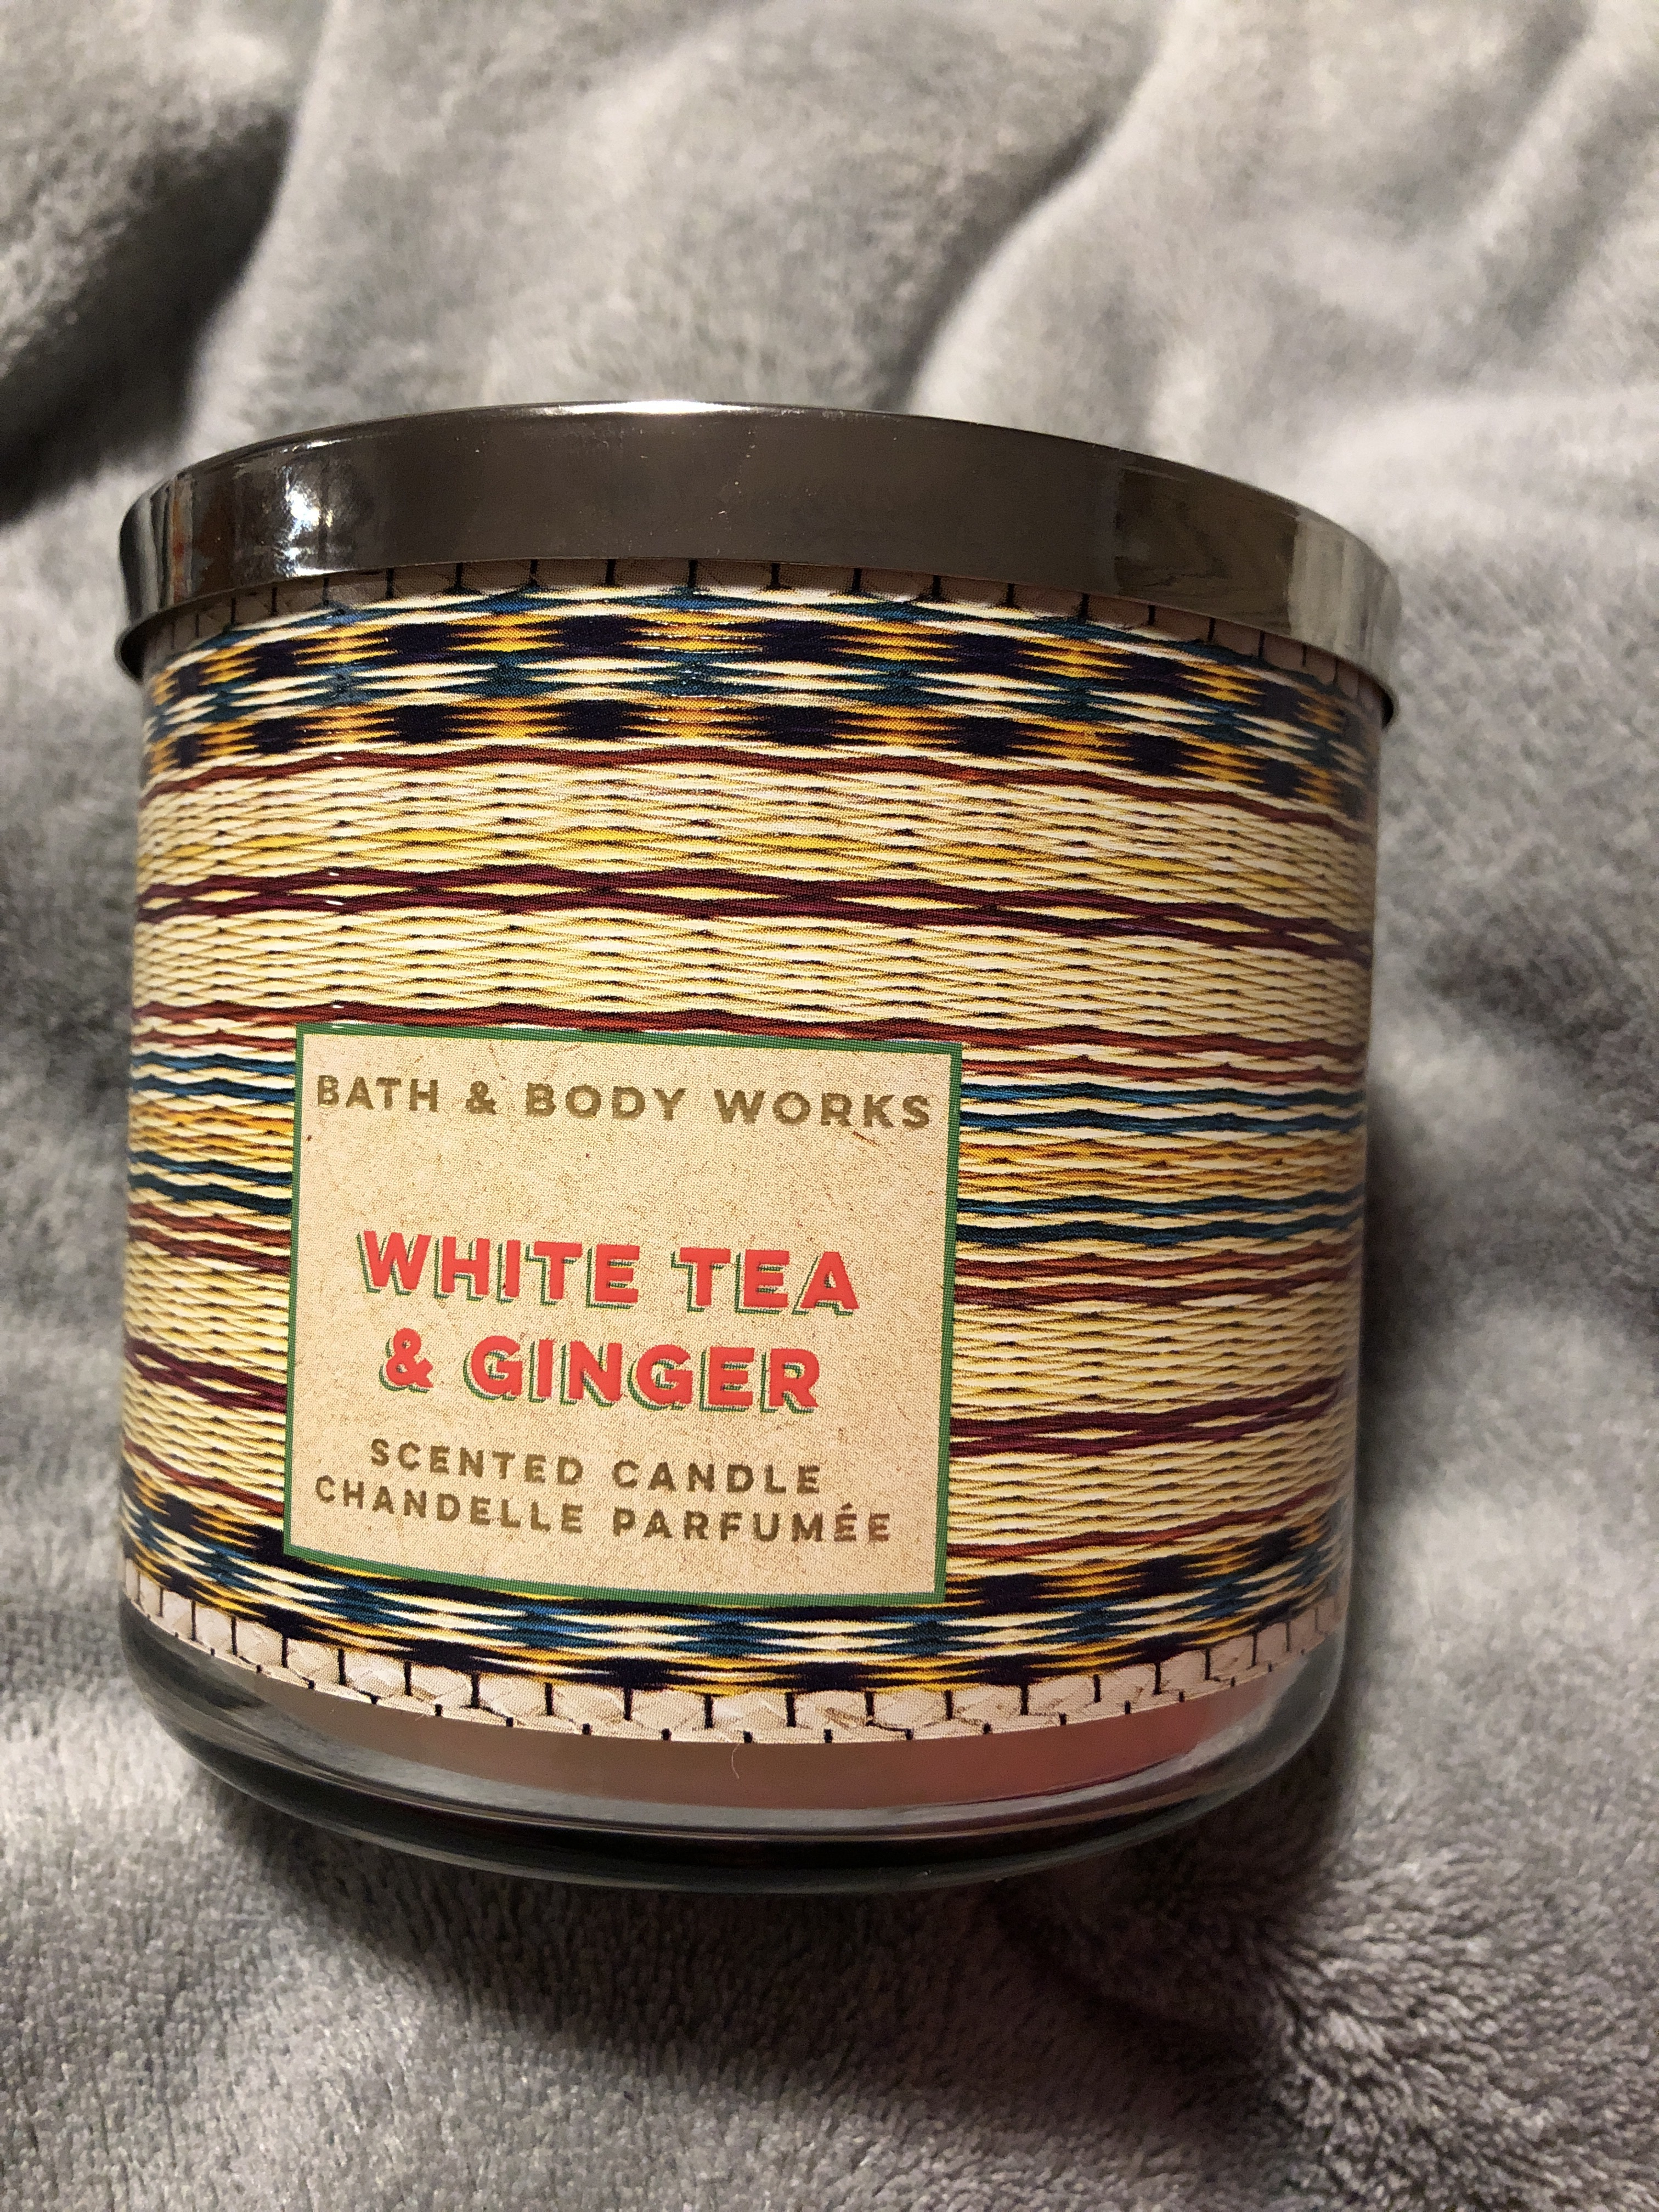 Bath Amp Body Works 3 Wick Candle Reviews In Home Fragrance